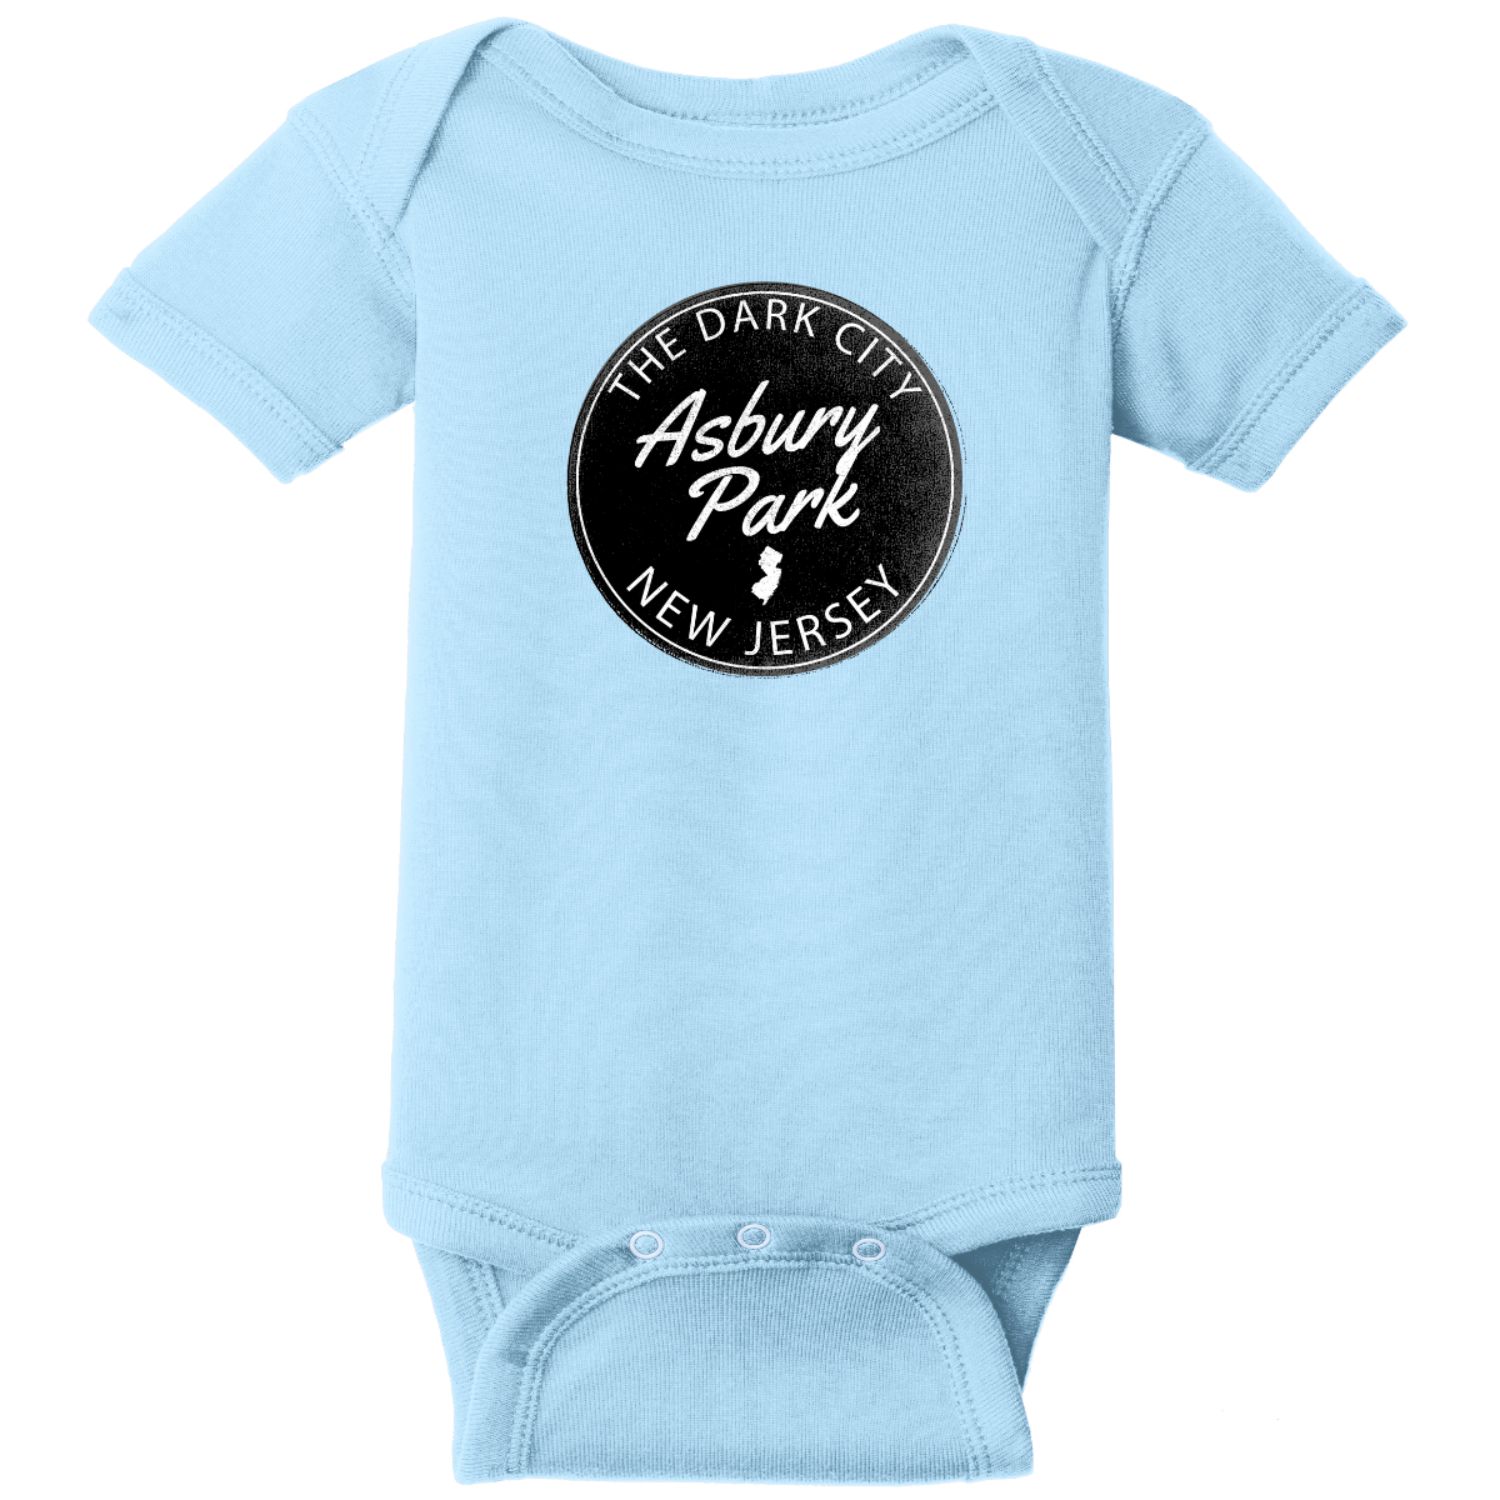 Asbury Park NJ Dark City Baby Bodysuit Light Blue Rabbit Skins Infant Short Sleeve Infant Rib Bodysuit RS4400